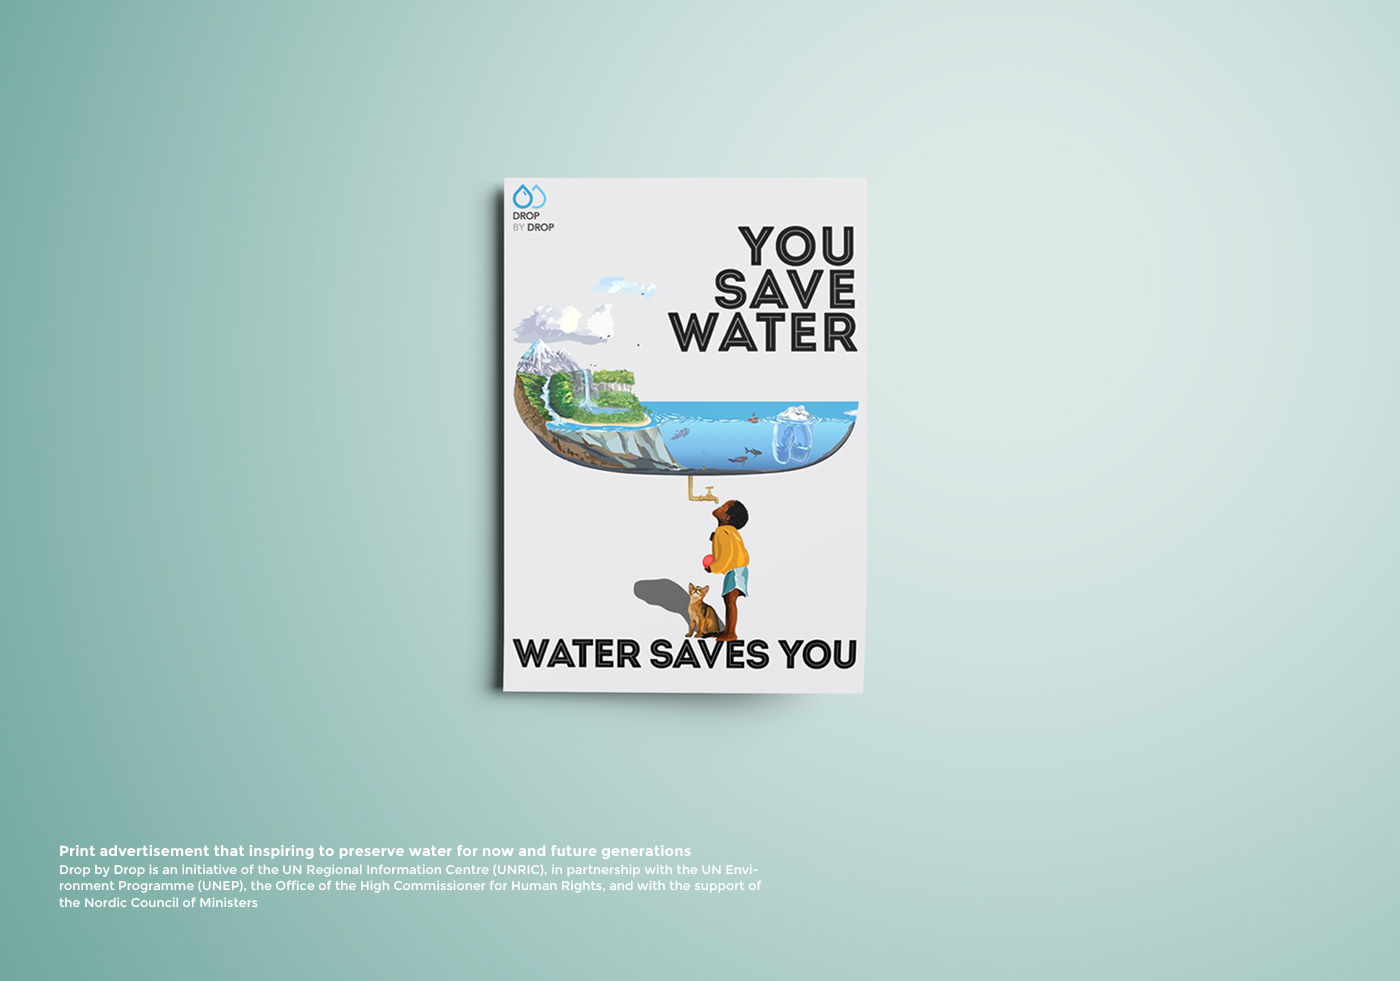 Poster / Newspaper Ad  Inspiring to Preserve Water